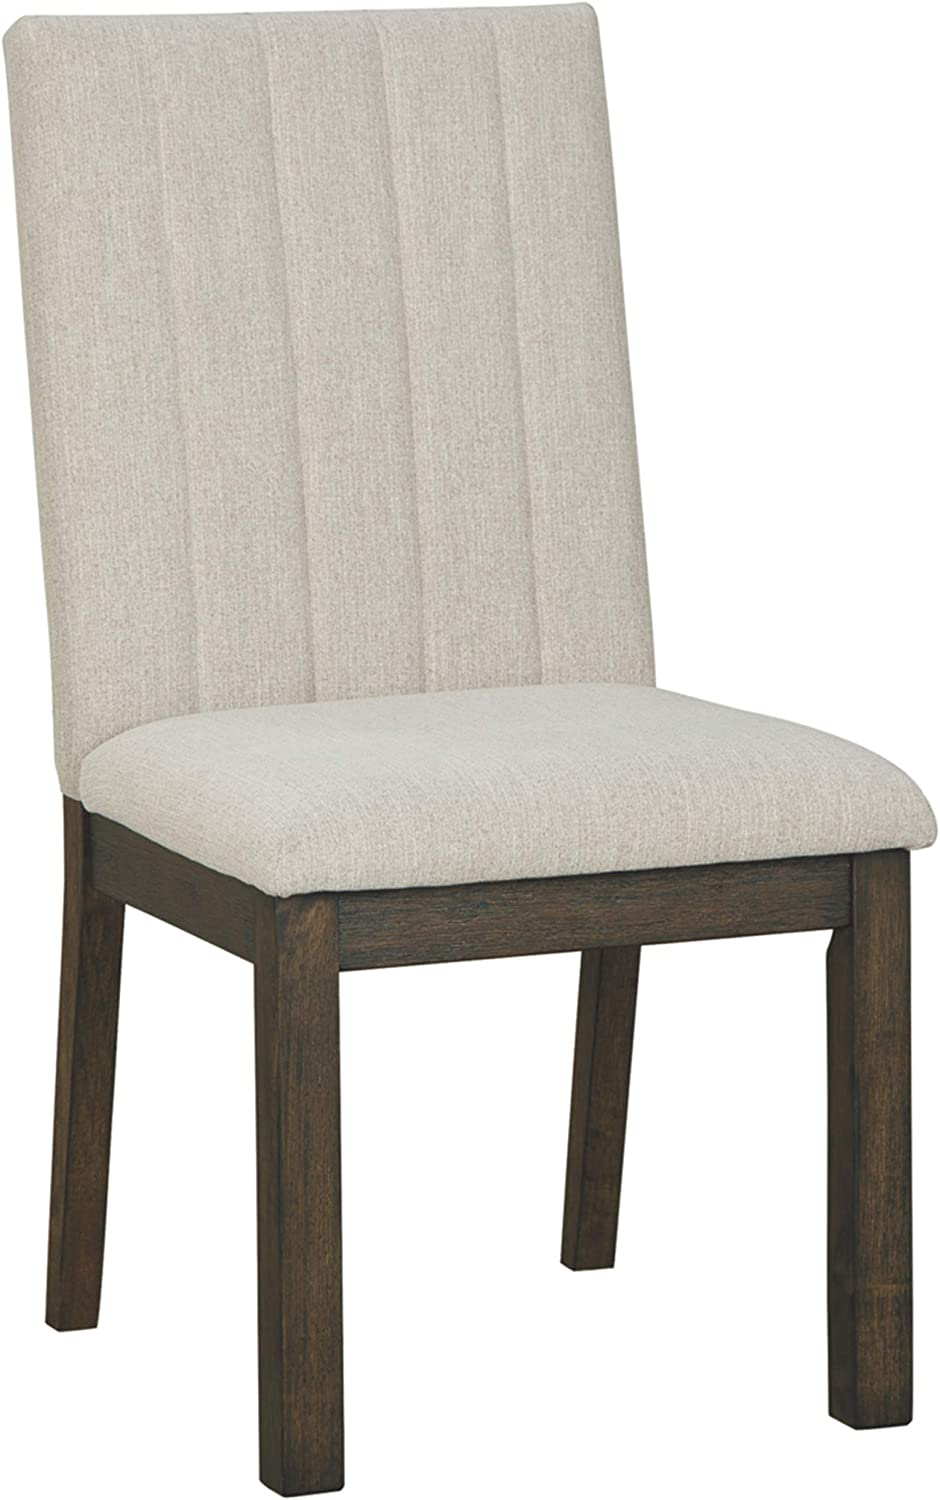 Signature Design by Ashley - Dellbeck Upholstered Dining Room Chair - Set of 2 - Beige